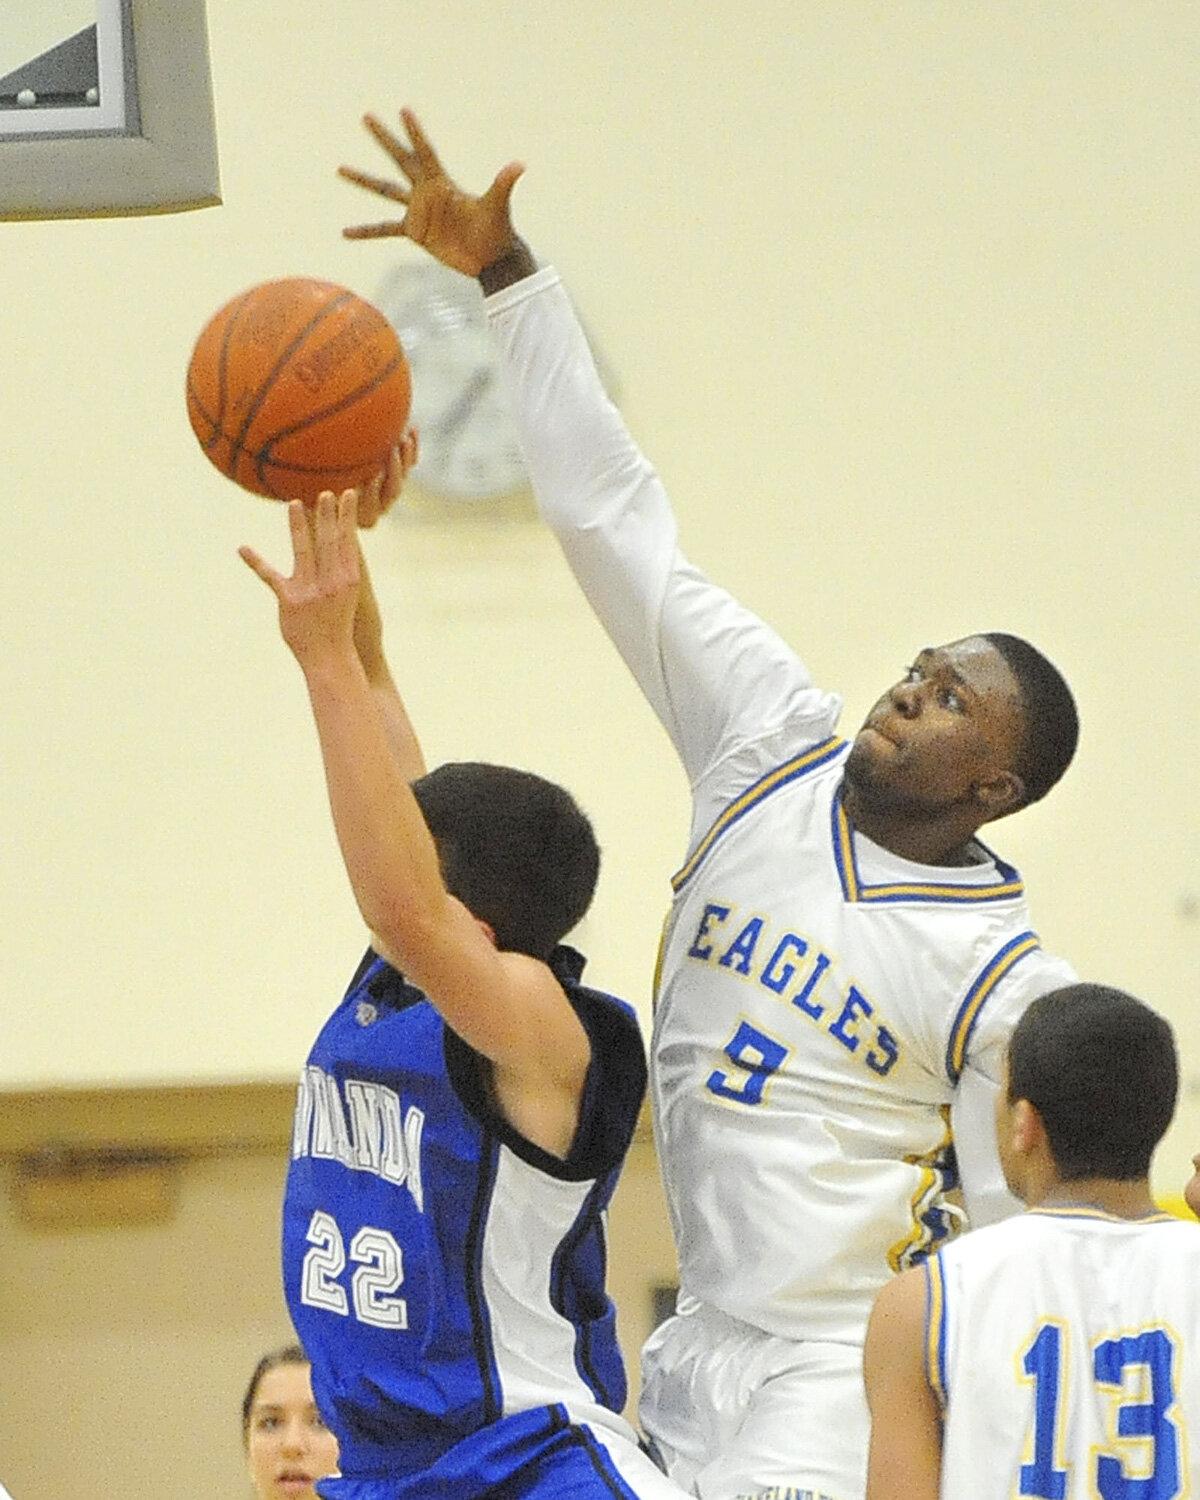 Clev-Hill's Jermaine Hairston tries to stuff Gowanda's Carter Benton as Clev-Hill faces Gowanda in boys varsity basketball.